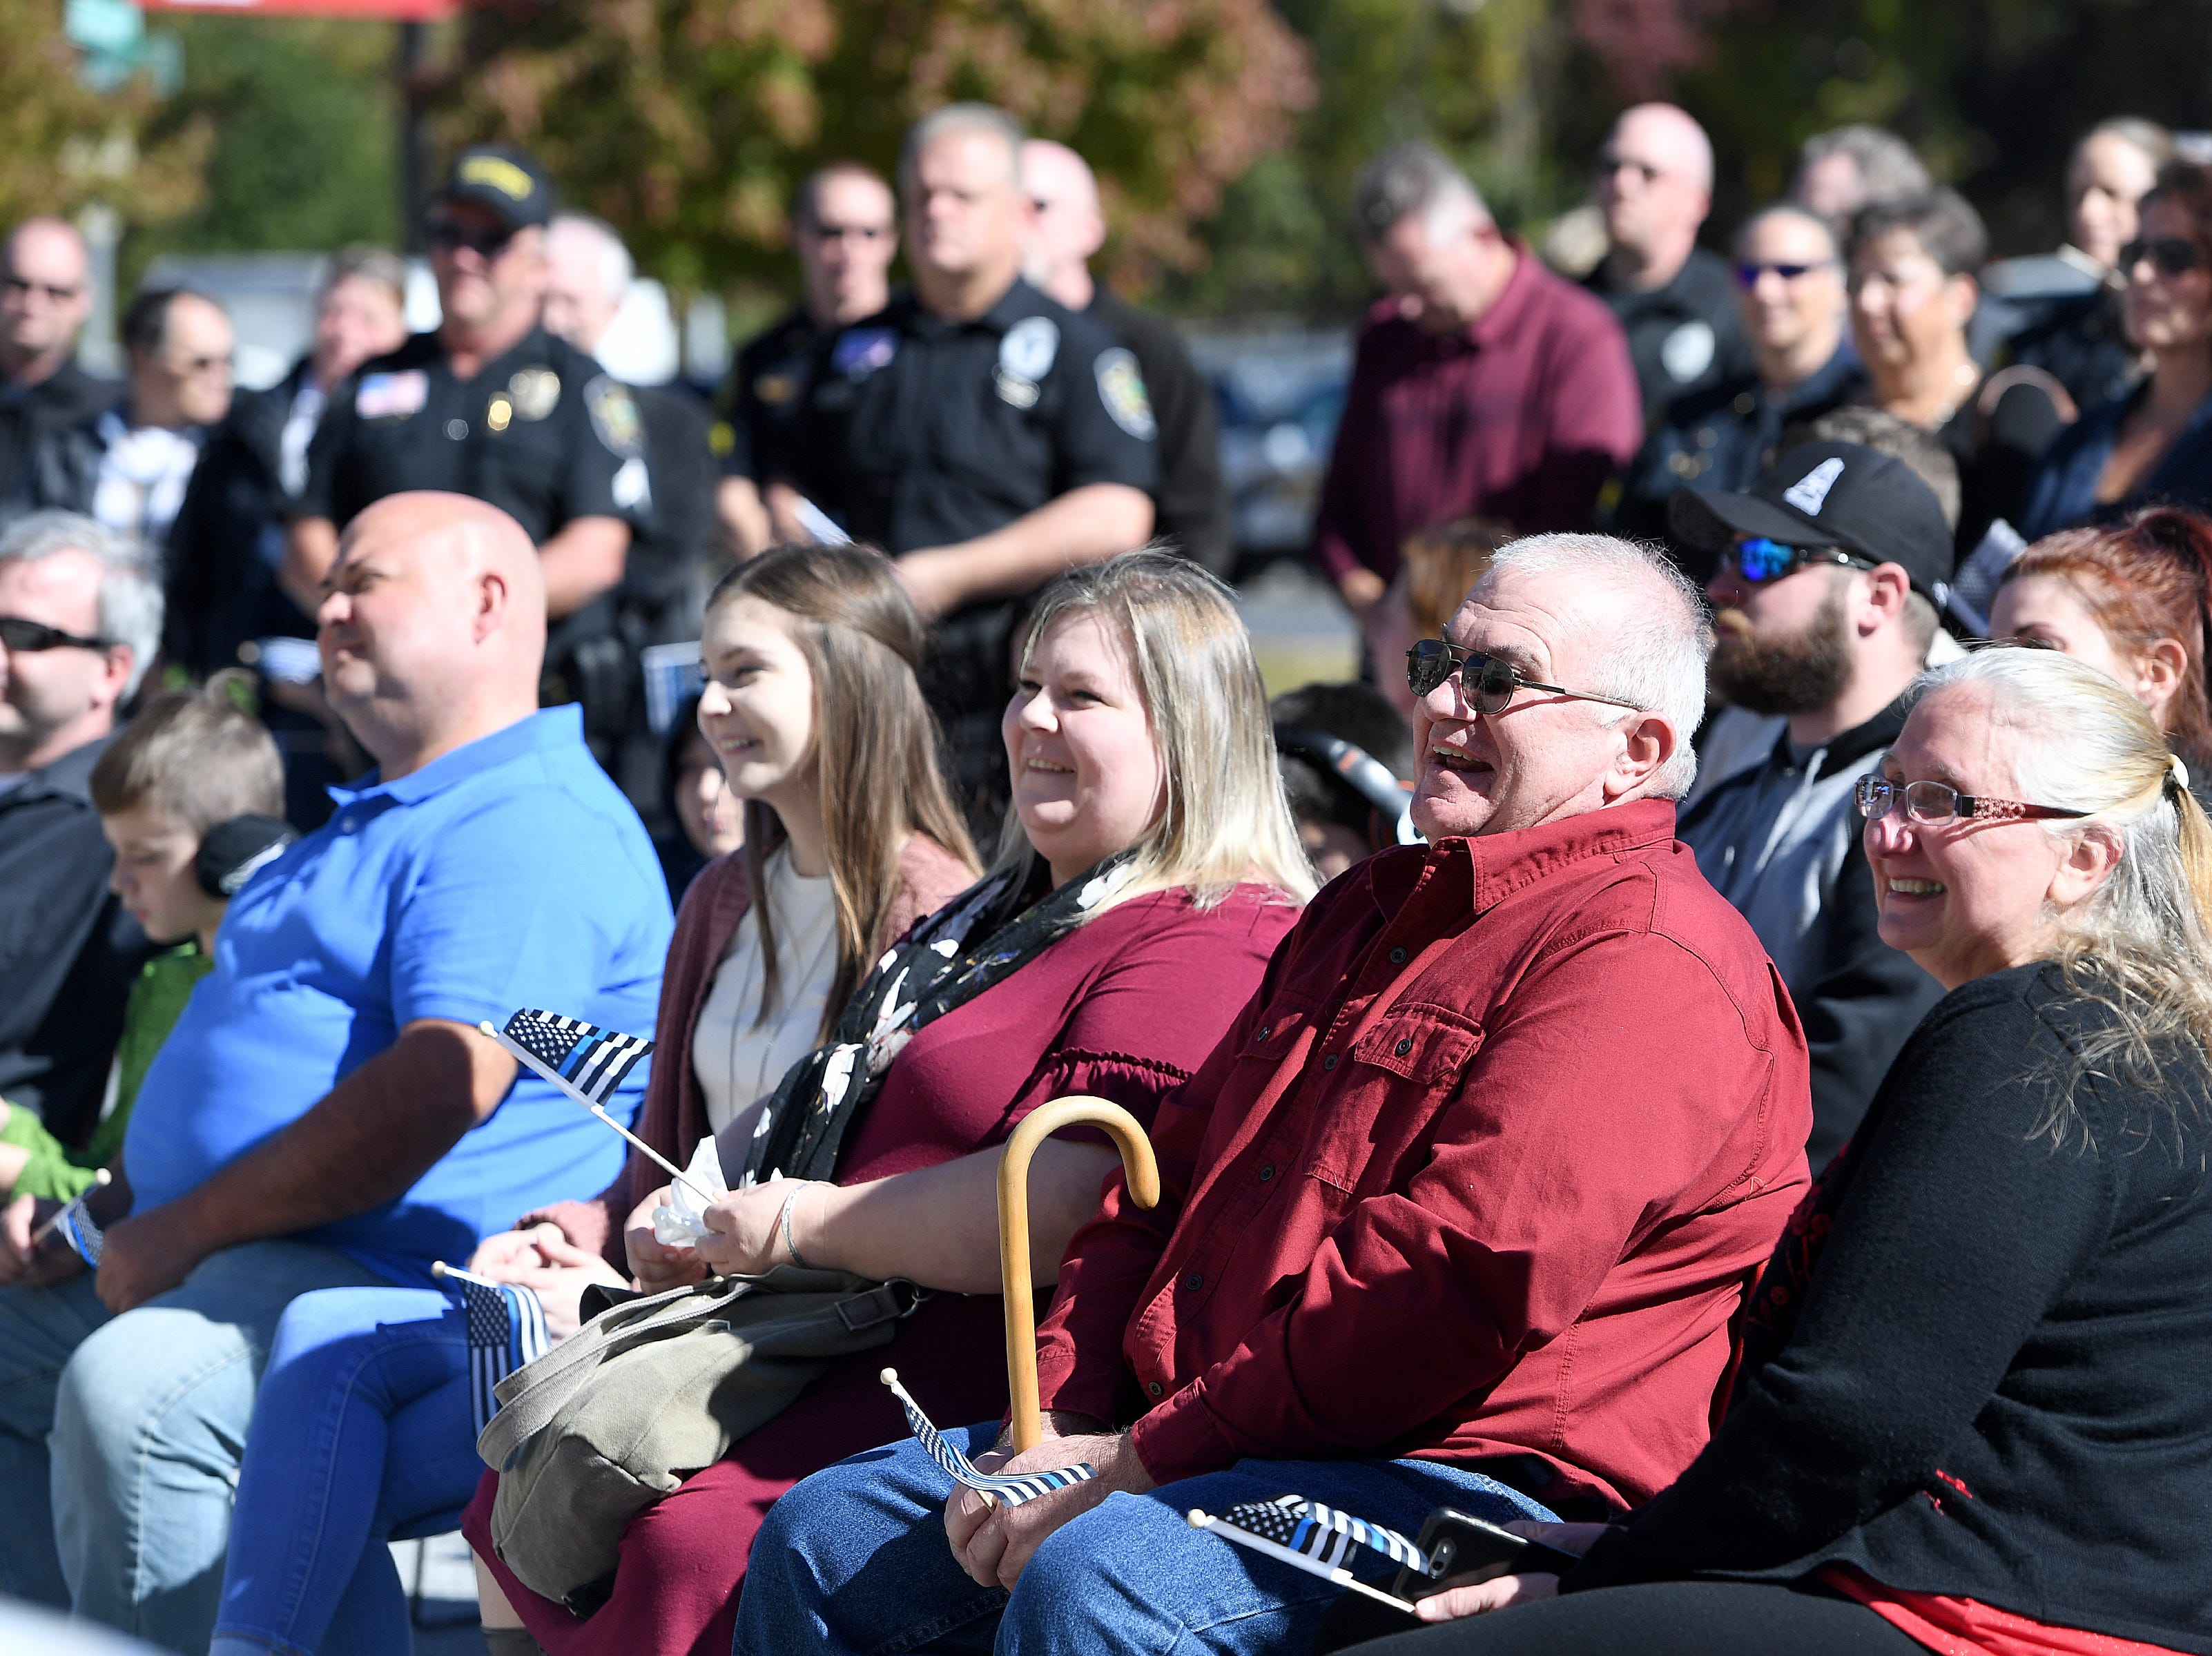 Family members of Robert Bingaman laugh as they remember him during a ceremony to dedicate a portion of Old Haywood Road to the Asheville police officer at the Traffic Safety Office on the five-year-anniversary of his death on Oct. 29, 2018.